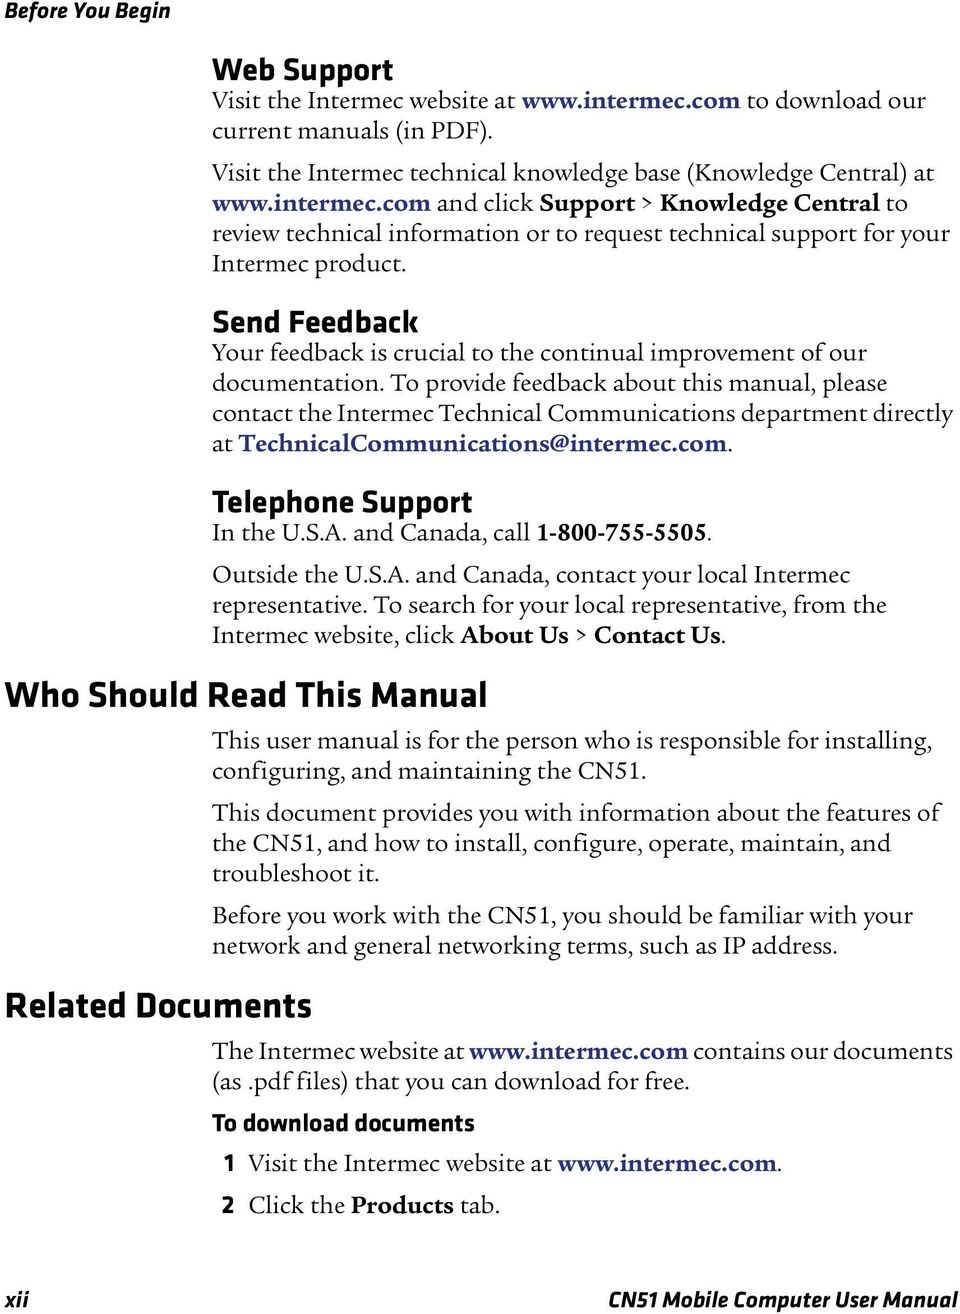 ... xii CN51 Mobile Computer User Manual. com and click Support > Knowledge  Central to review technical information or to request technical support